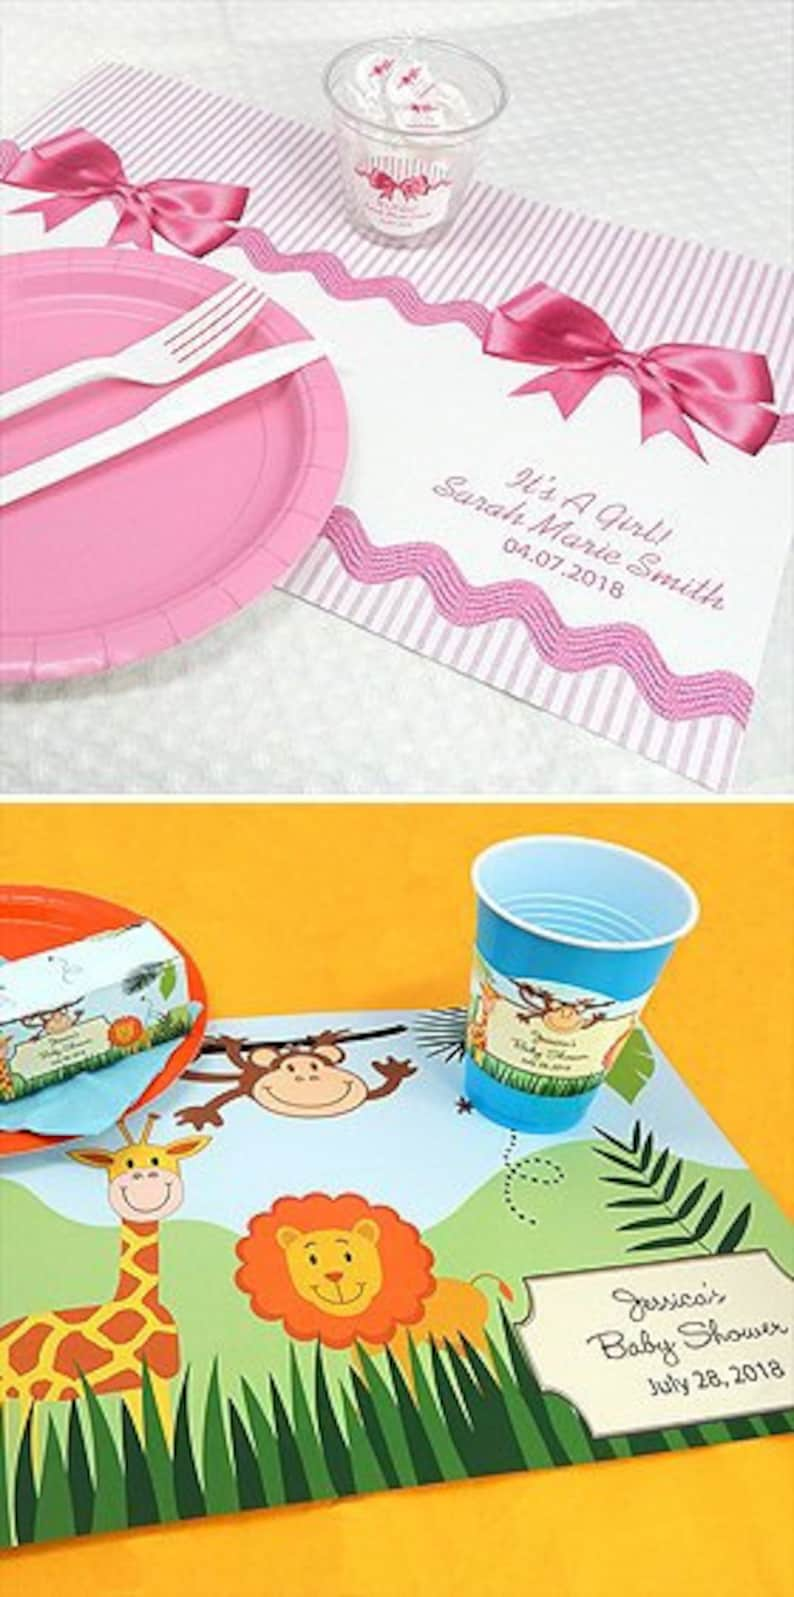 SET Of 24 Baby Placemats Safari Owl Festive Luncheon Baby Shower Mom To Be Gender Reveal Girl Boy Dinner Table Setting Party Decorations